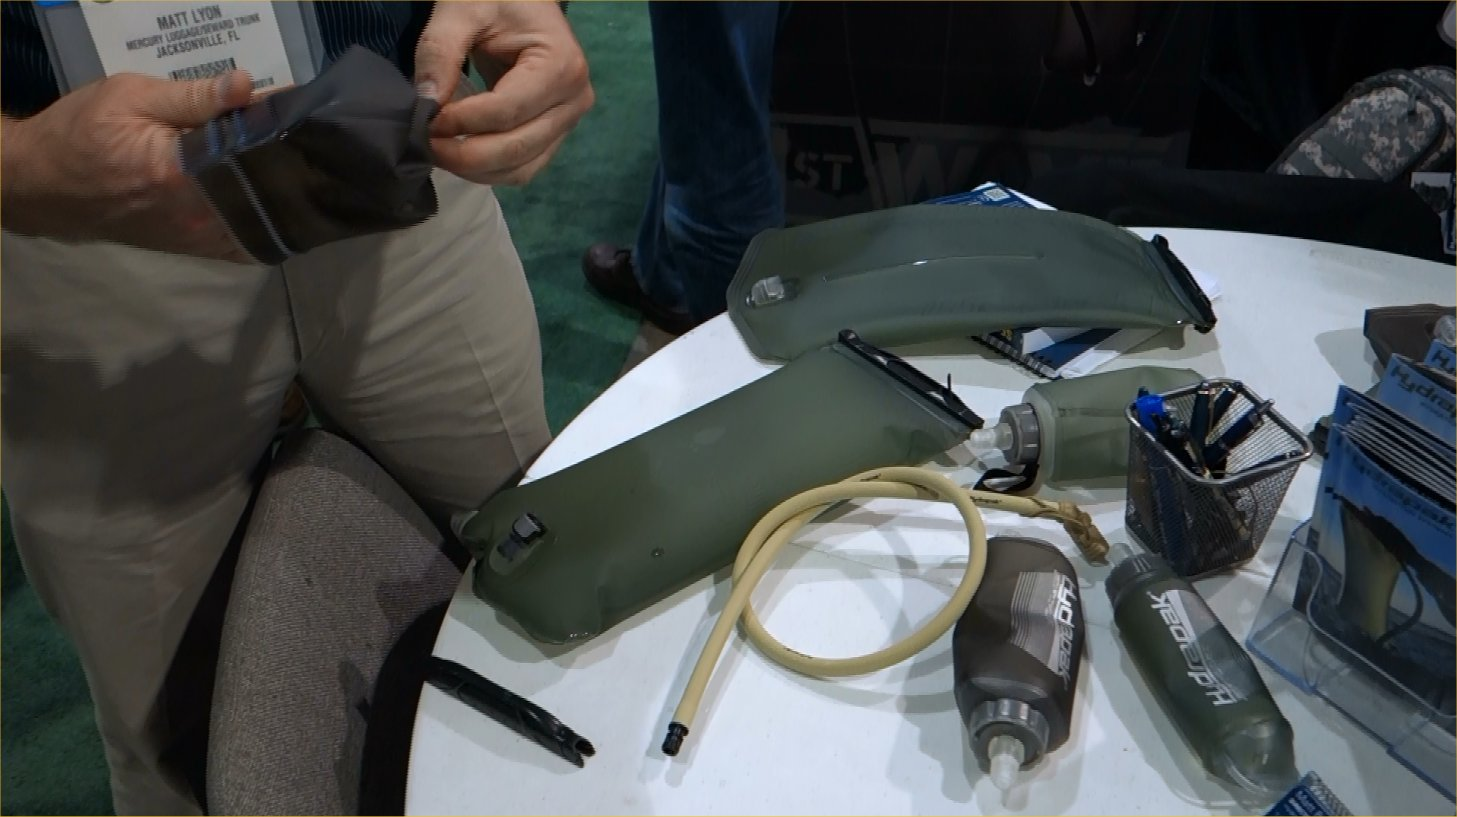 Hydrapak First Wave 1st Wave Military Tactical Hydration Reservoir System Combat Hydration System Matt Lyon SHOT Show 2013 David Crane DefenseReview.com DR 6 Hydrapak Softflask (Soft Flask) Collapsible Water Bottle with Bite Valve: Tactical Hydration in Flexible Water Bottle Form (Video!)